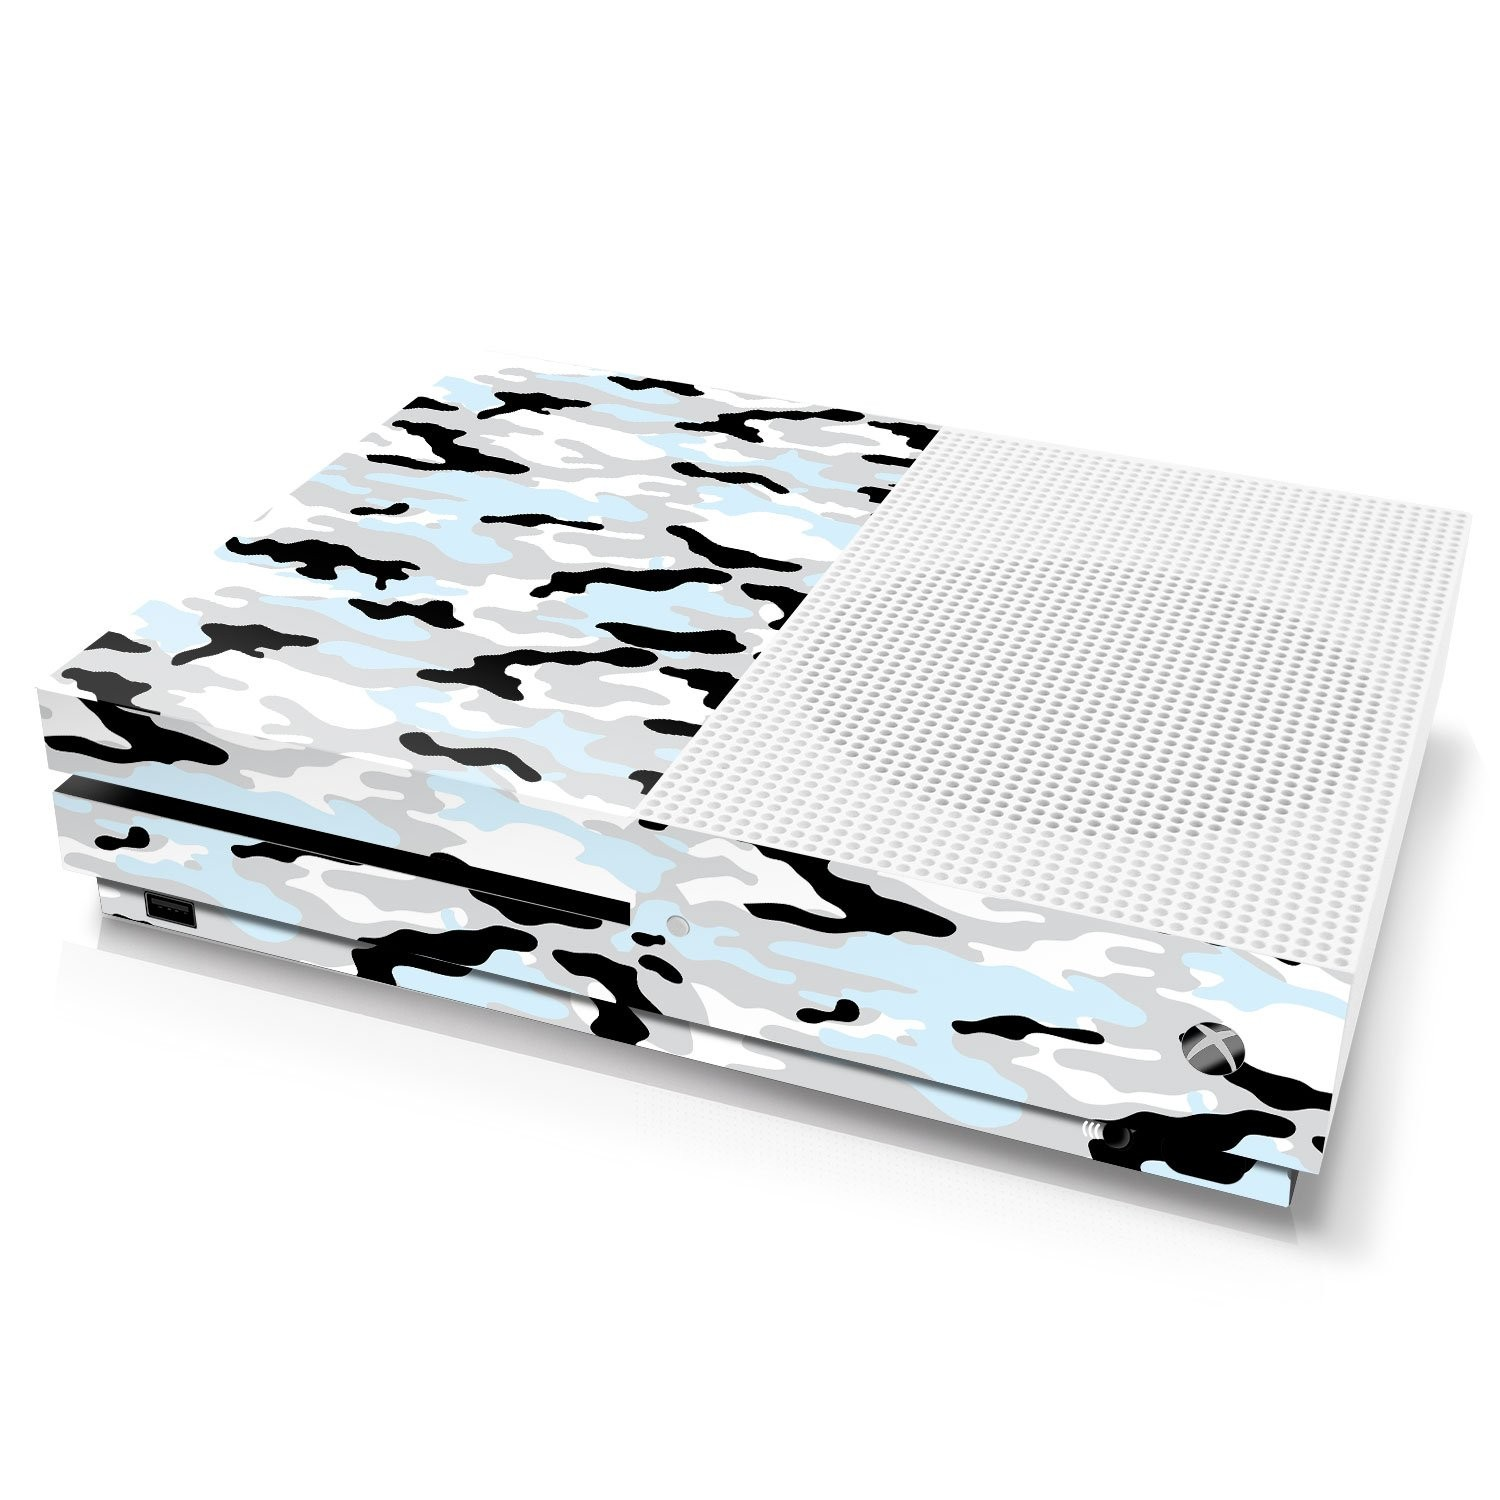 Xbox One S Console Skin - Camouflage: Snow - Officially Licensed by Xbox